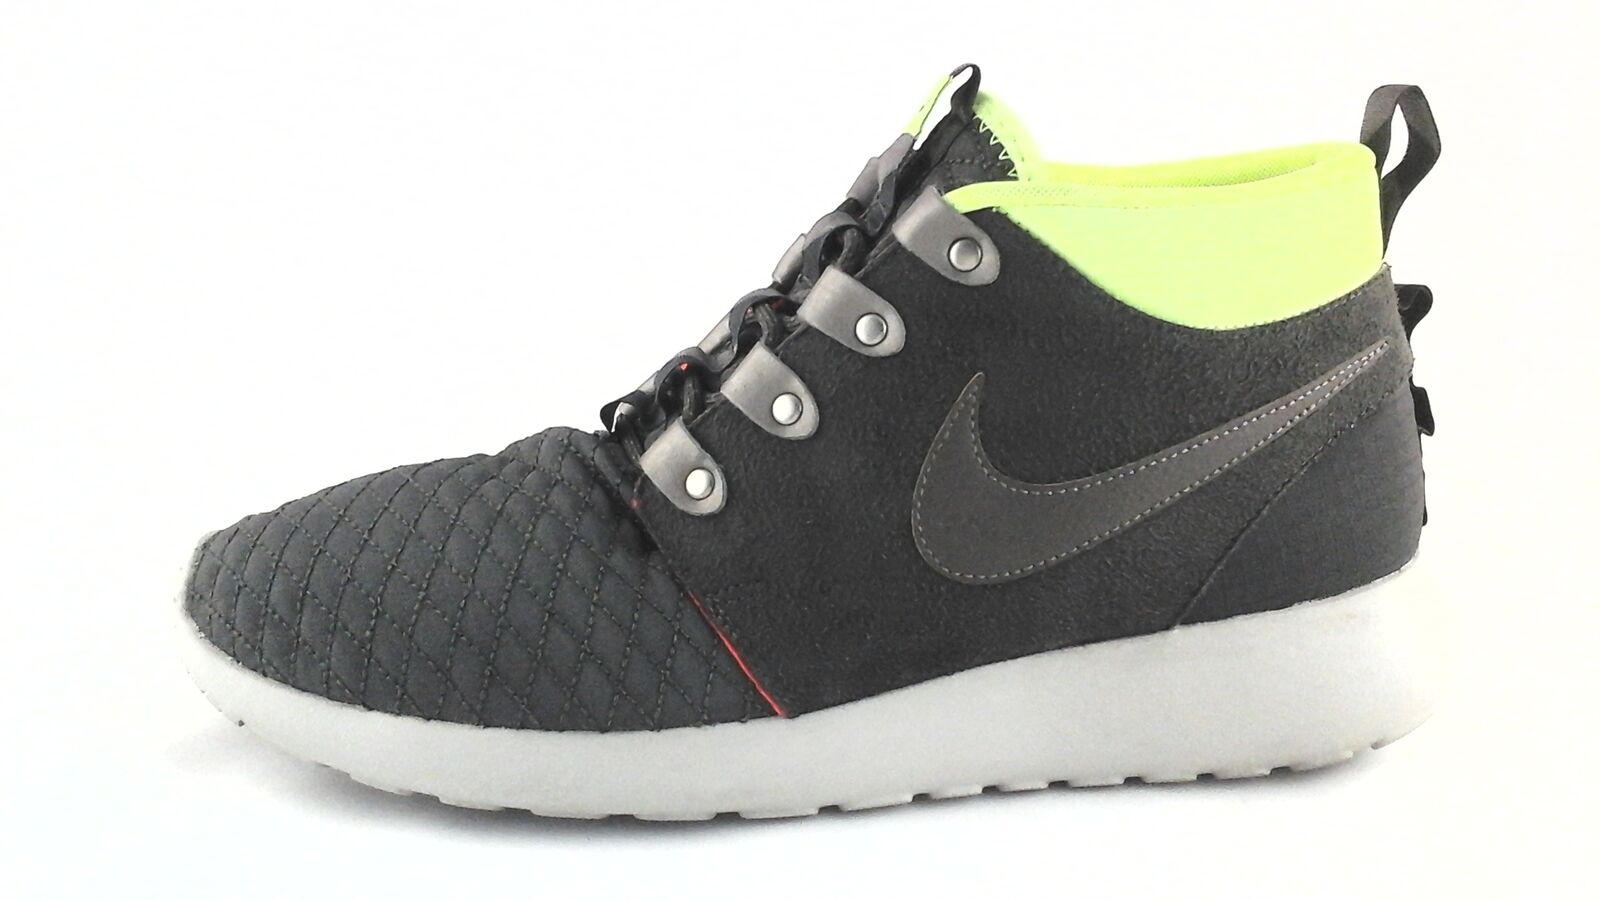 Nike Nike Nike 615601-007 Hommes Roshe Run One Sneakerboot Quilt Smoke US 9.58.5 EU 43 29f3b3